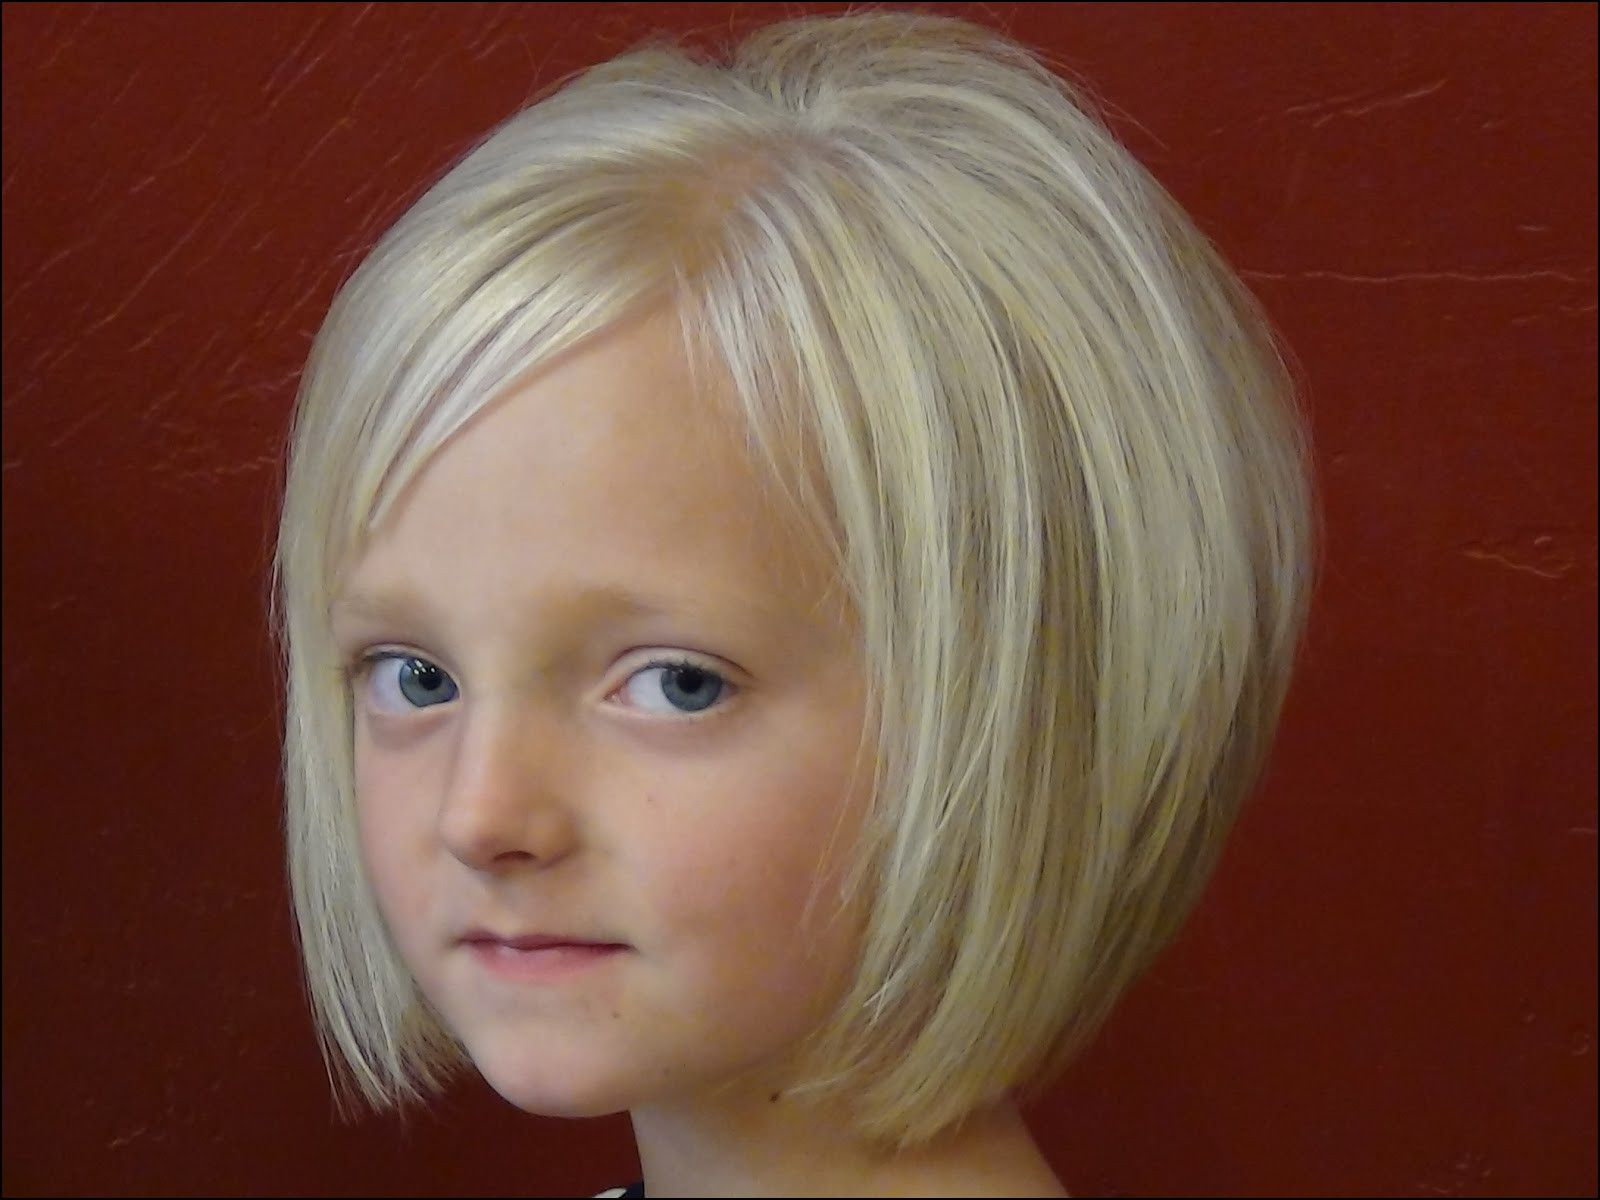 Kid Girl Short Haircuts | Kid Hair | Pinterest | Girls Short Intended For Young Girl Short Hairstyles (View 18 of 25)